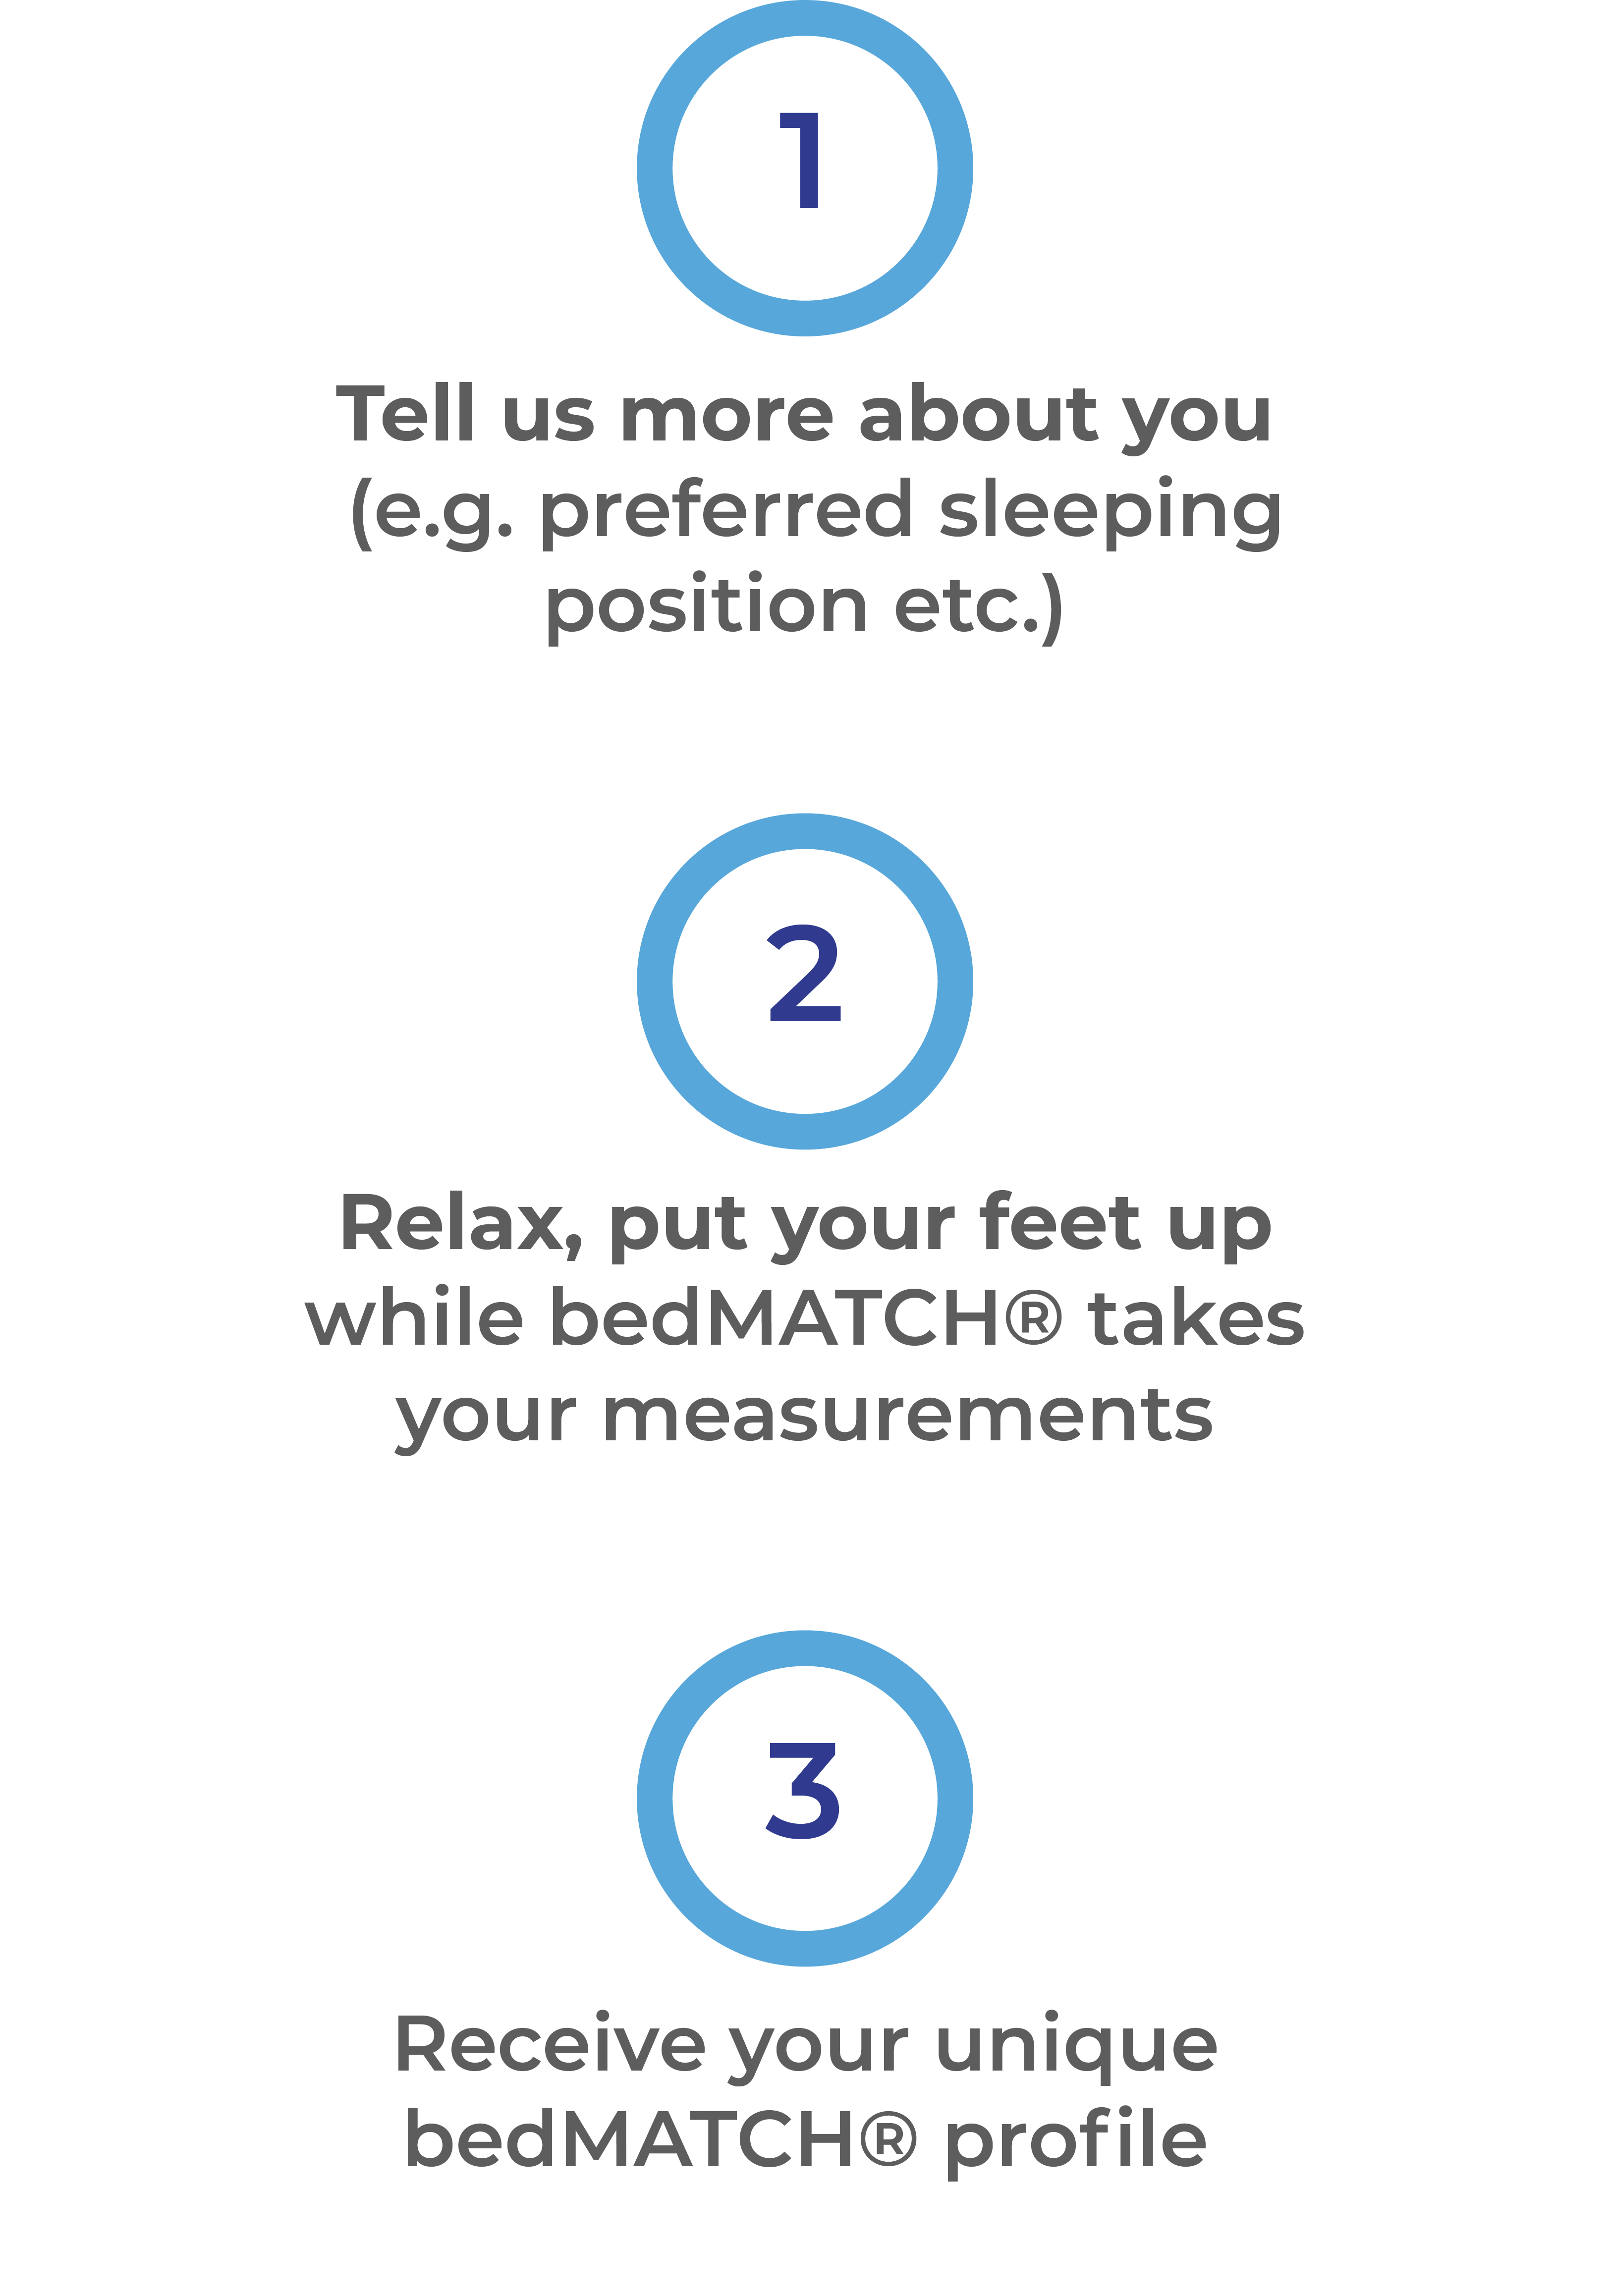 How bedMATCH® works